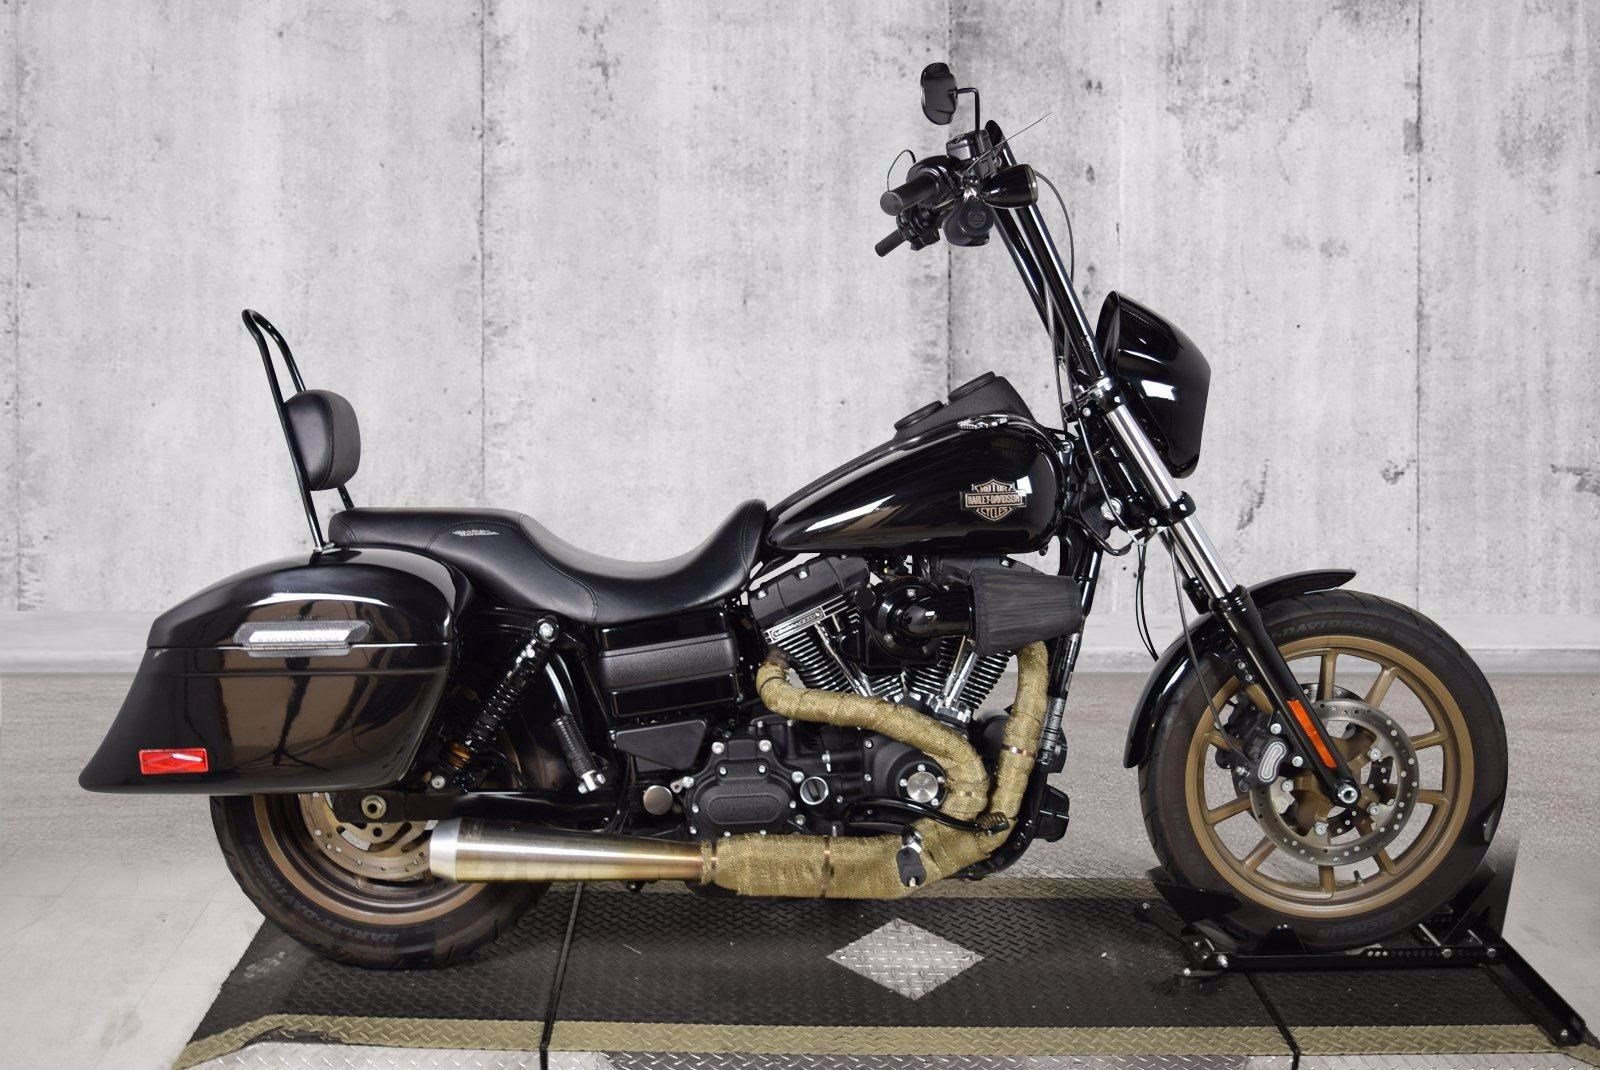 Pre-Owned 2017 Harley-Davidson Dyna Low Rider S FXDLS